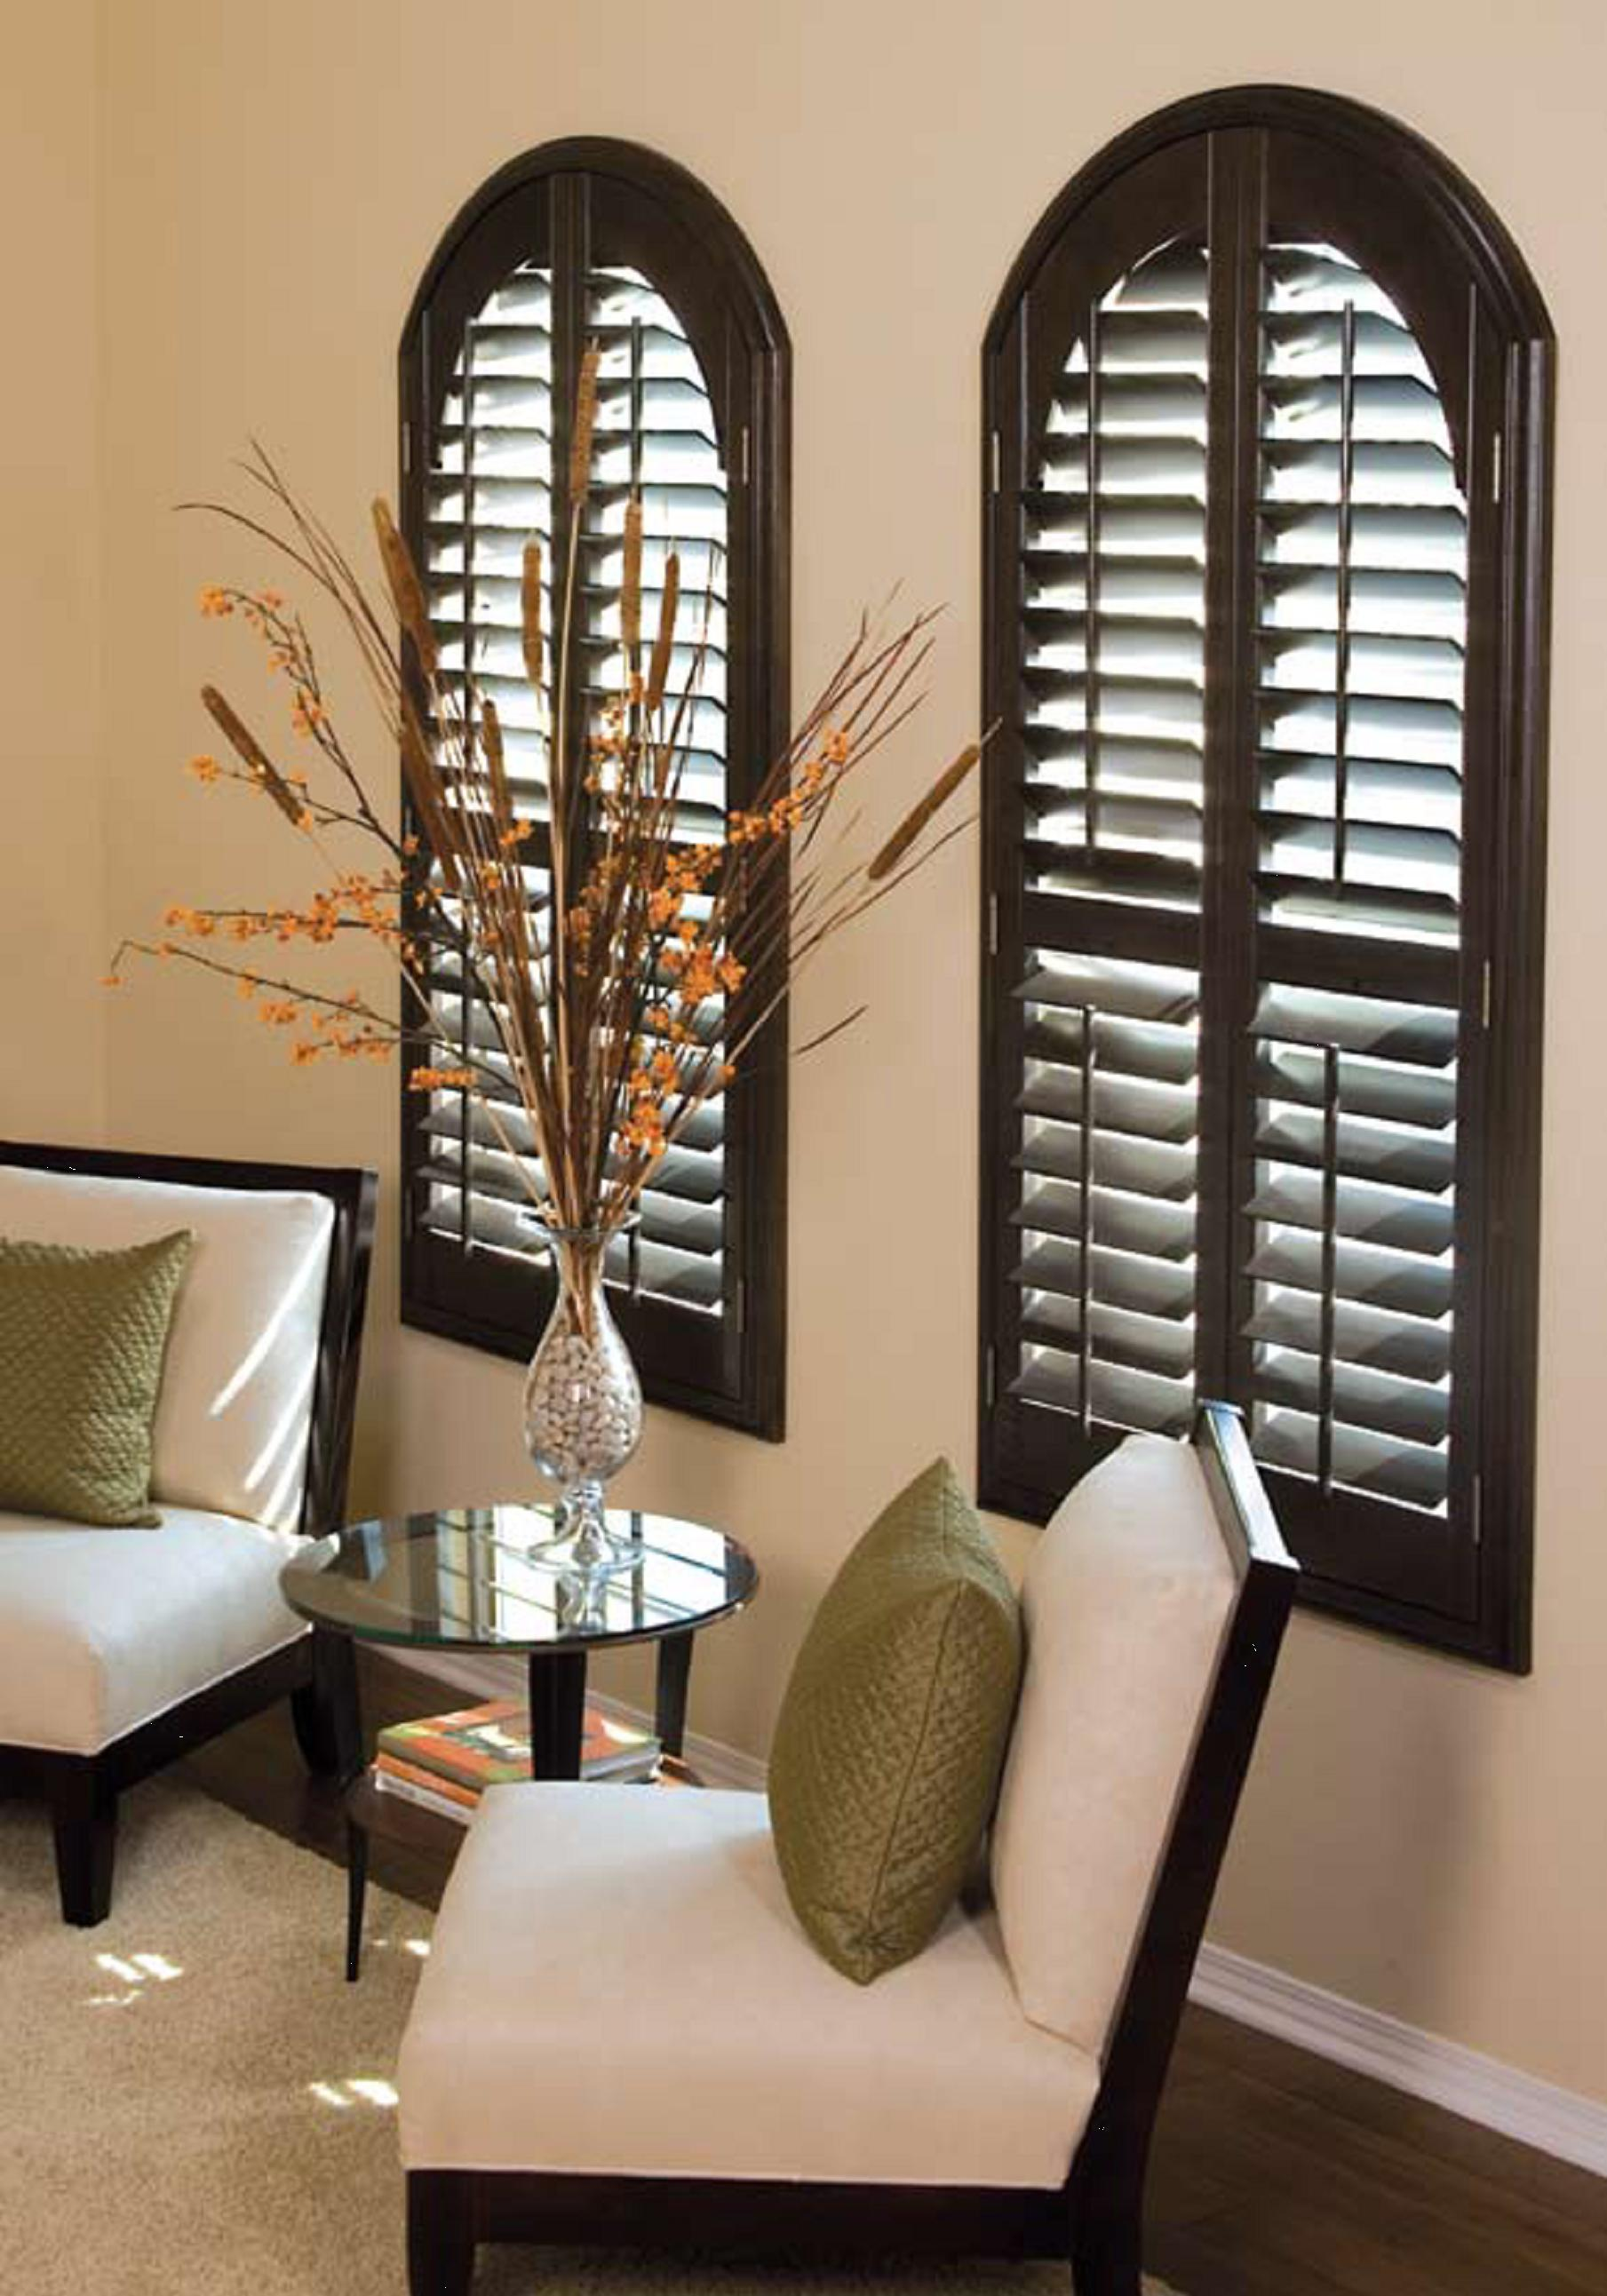 Plantation shutters wood shutters faux wood shutters window shutters interior shutters